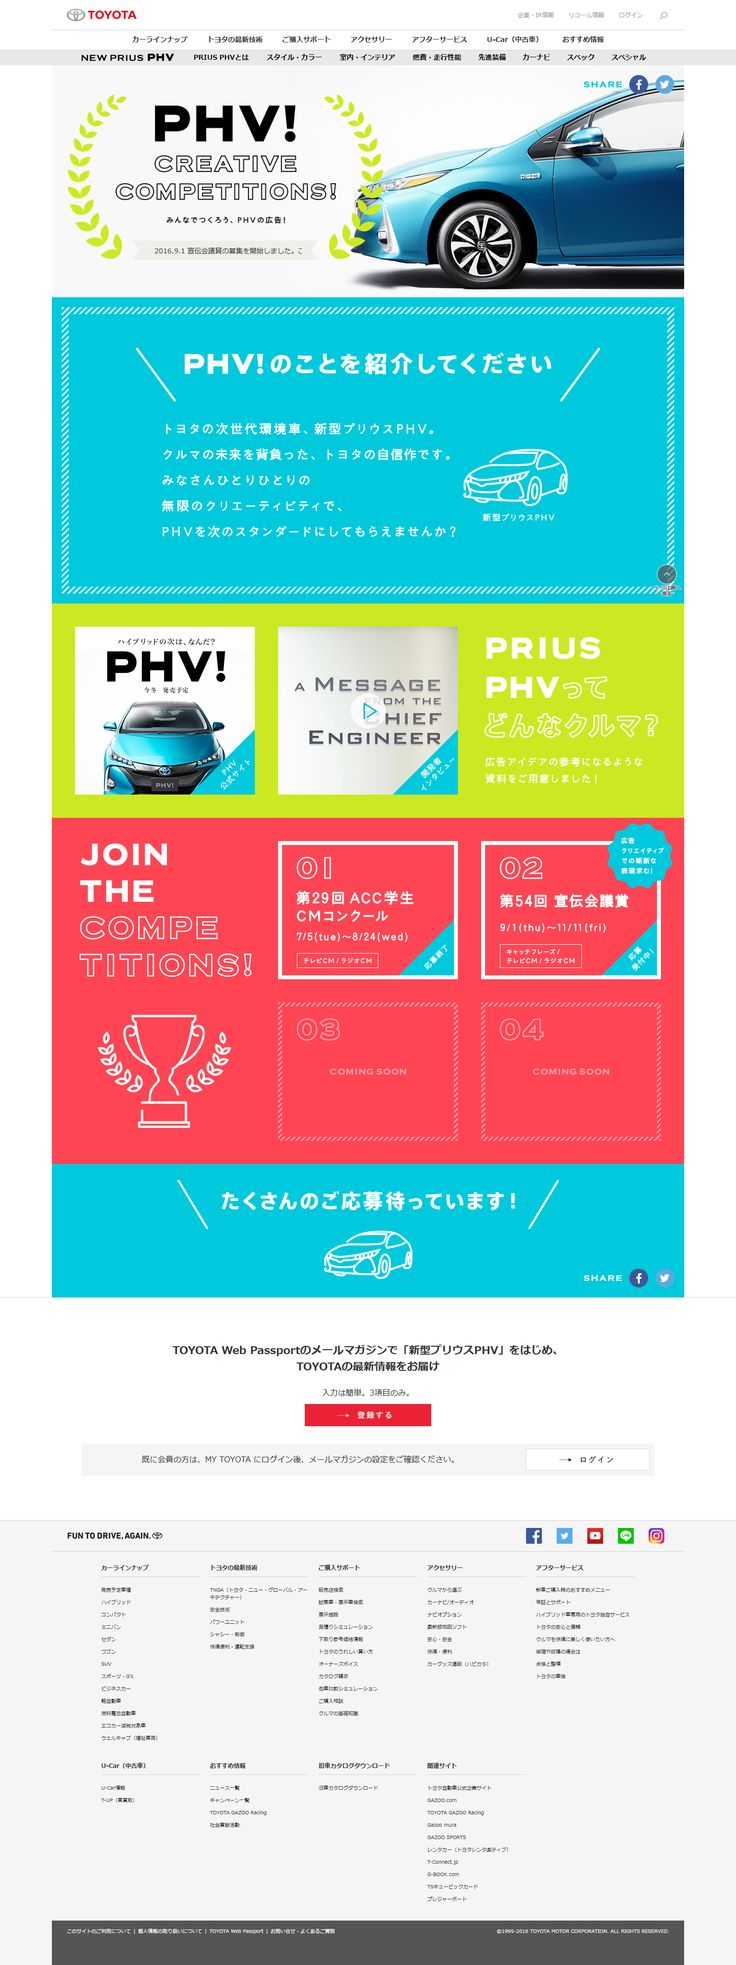 トヨタ 新型プリウスPHV | CREATIVE COMPETITIONS! http://toyota.jp/new_priusphv/award/